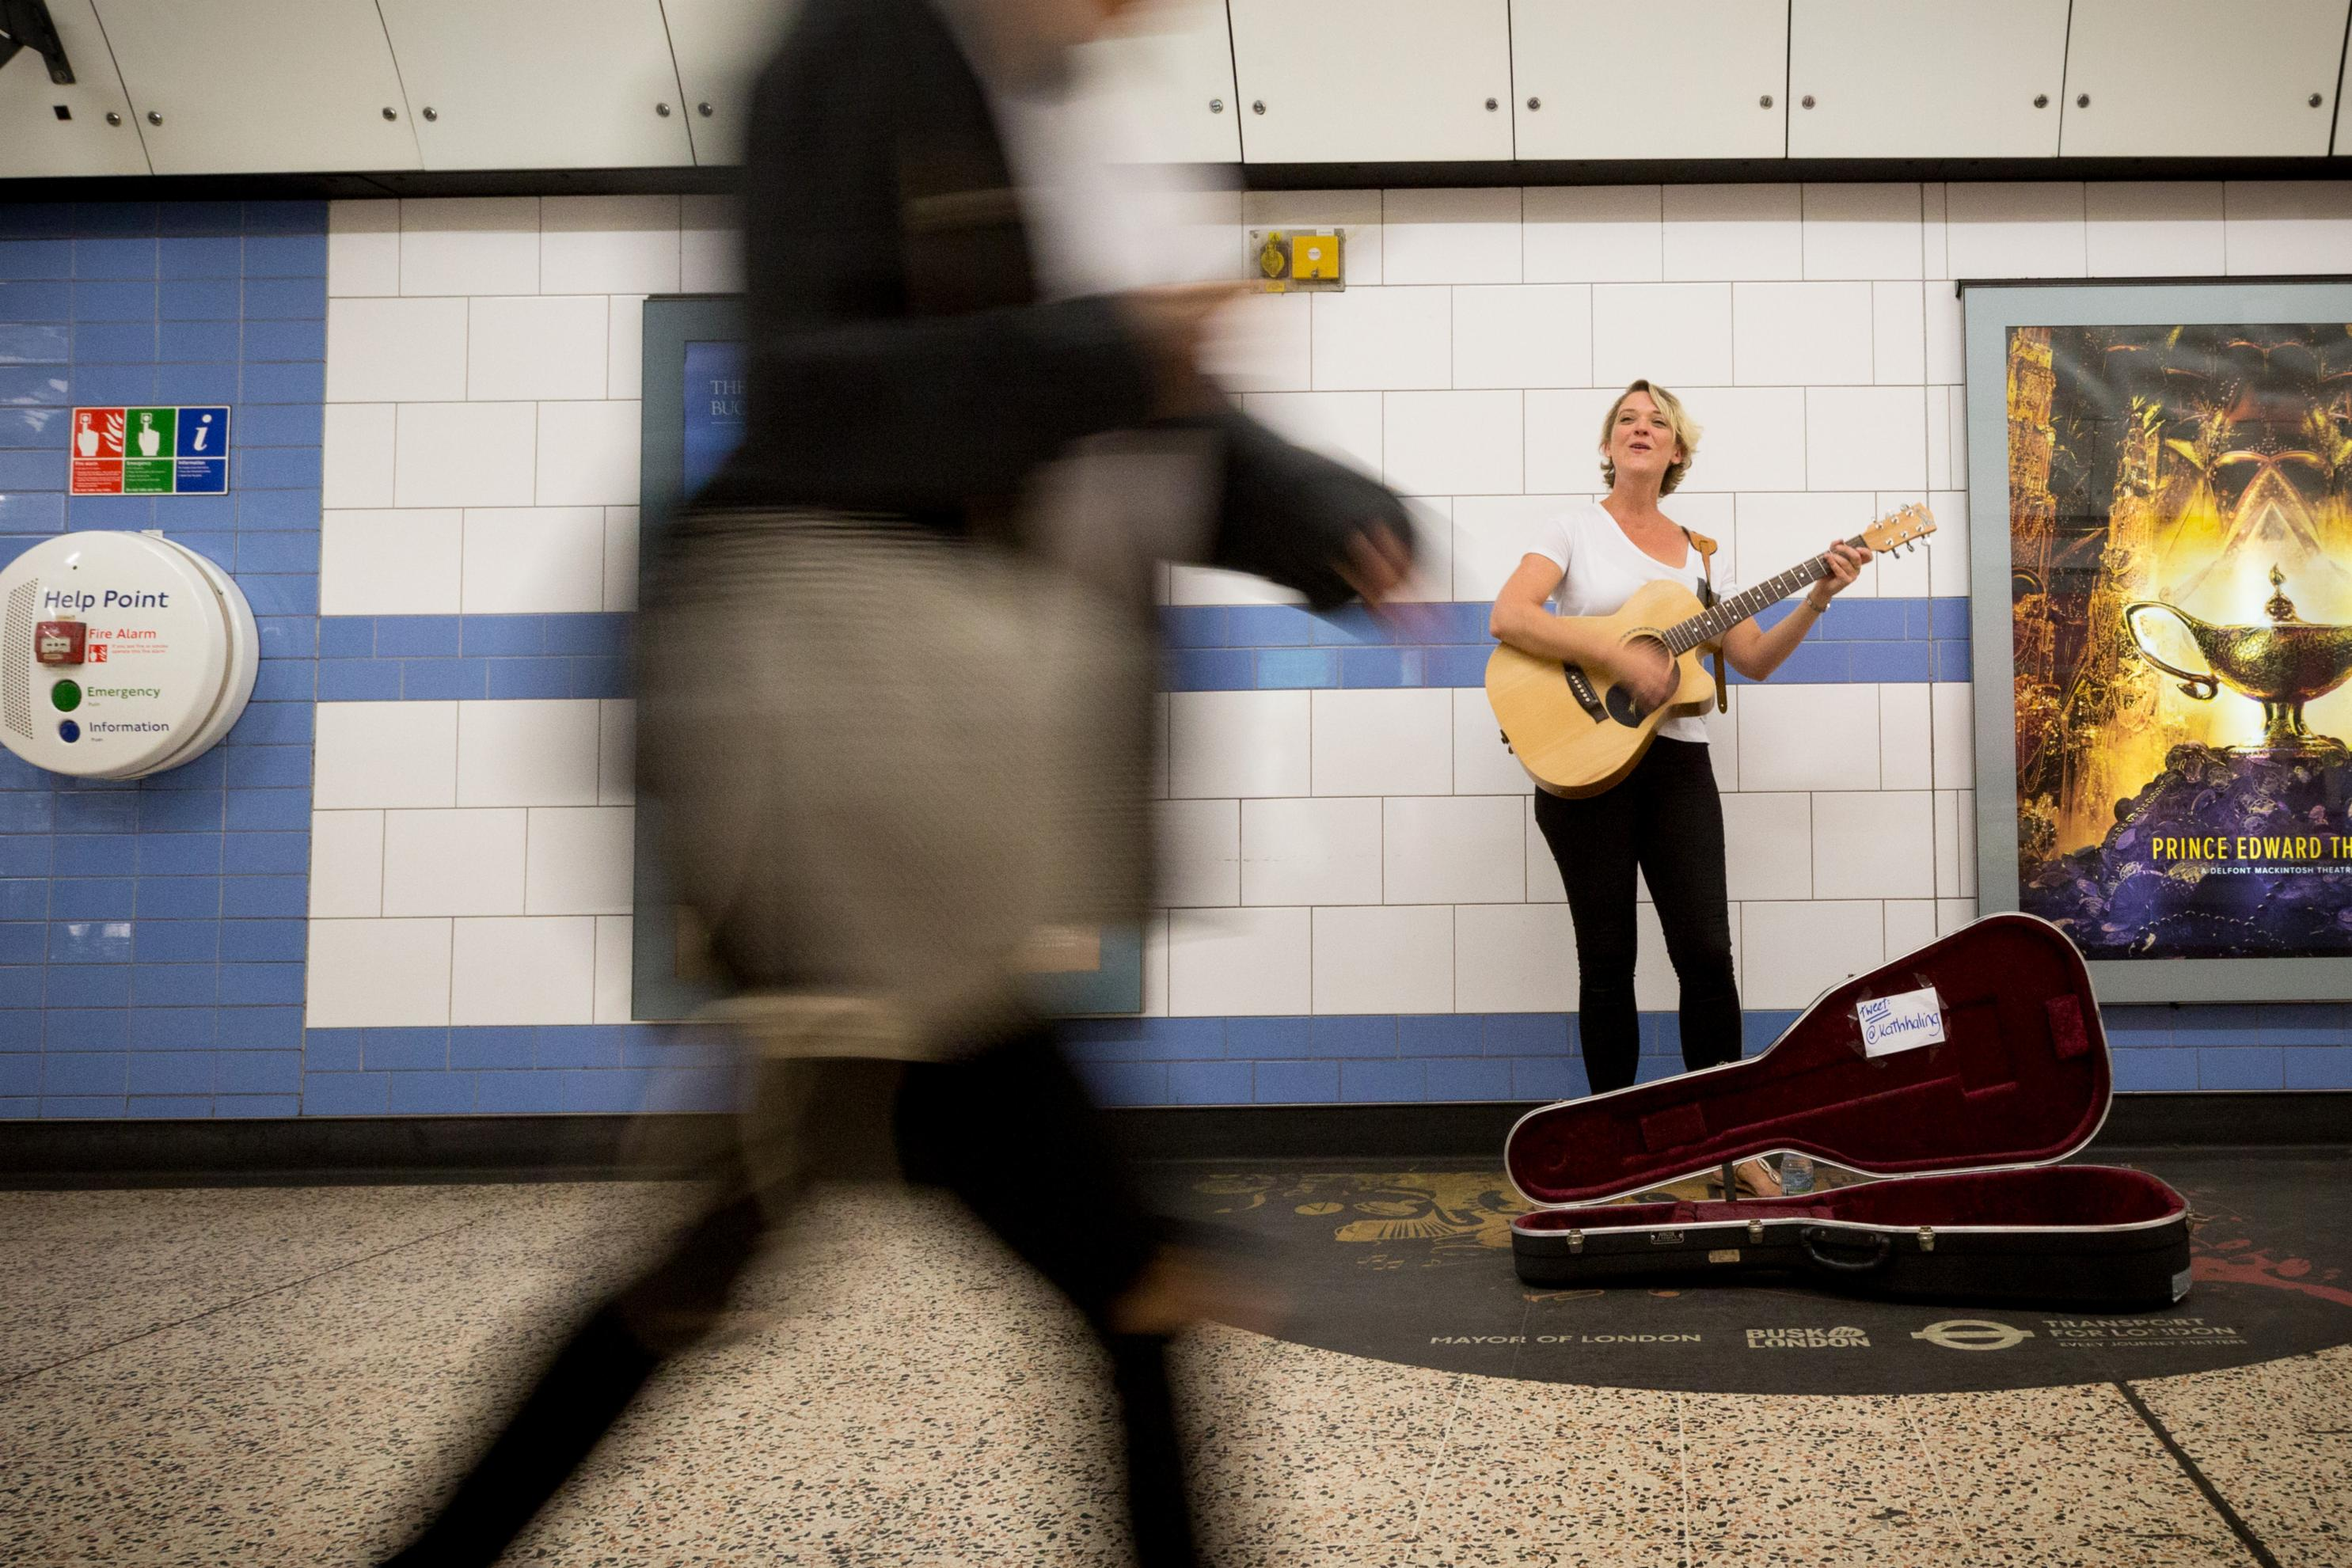 Woman busks at TfL pitch